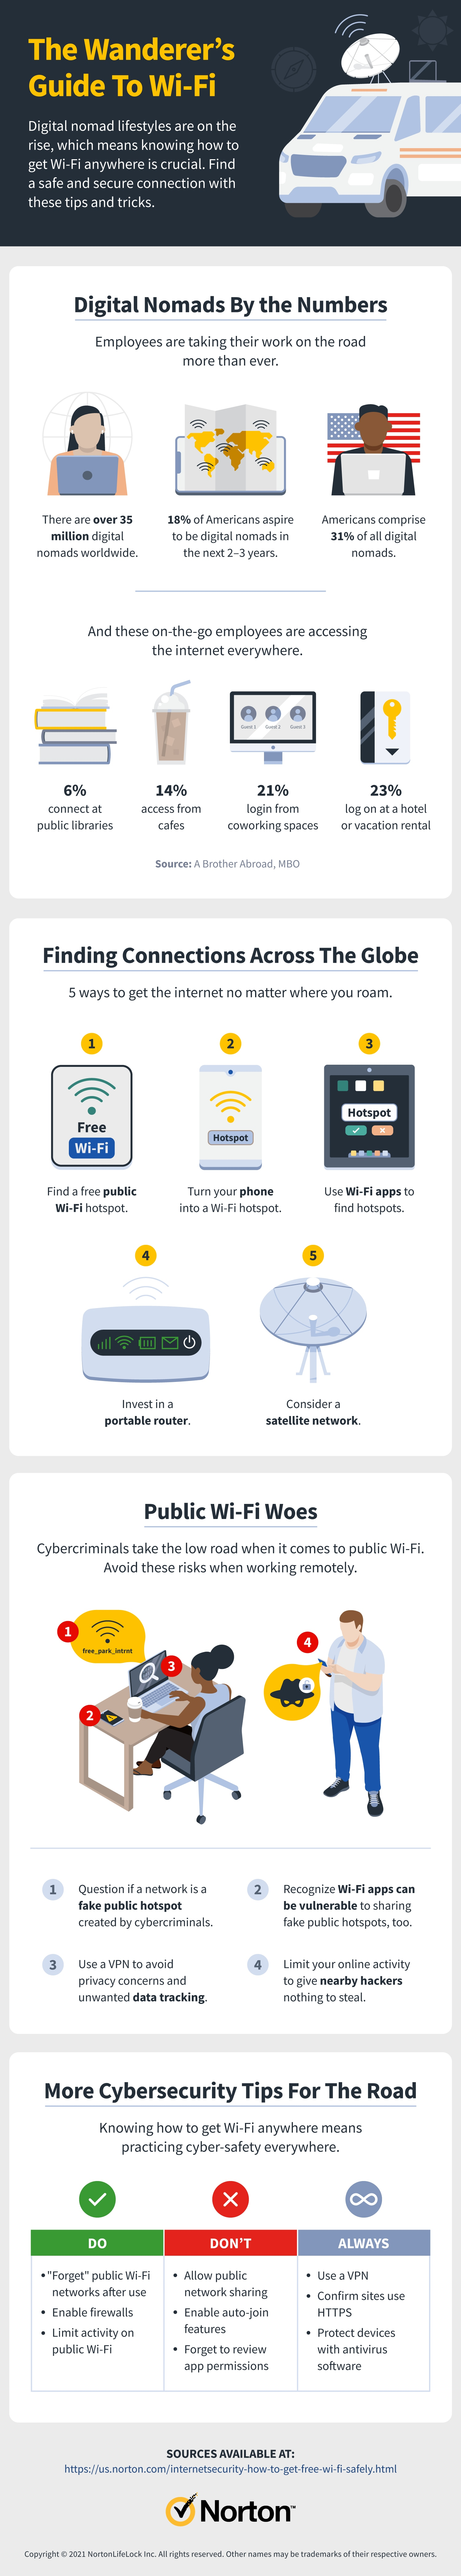 How to get free Wi-Fi: The digital nomad